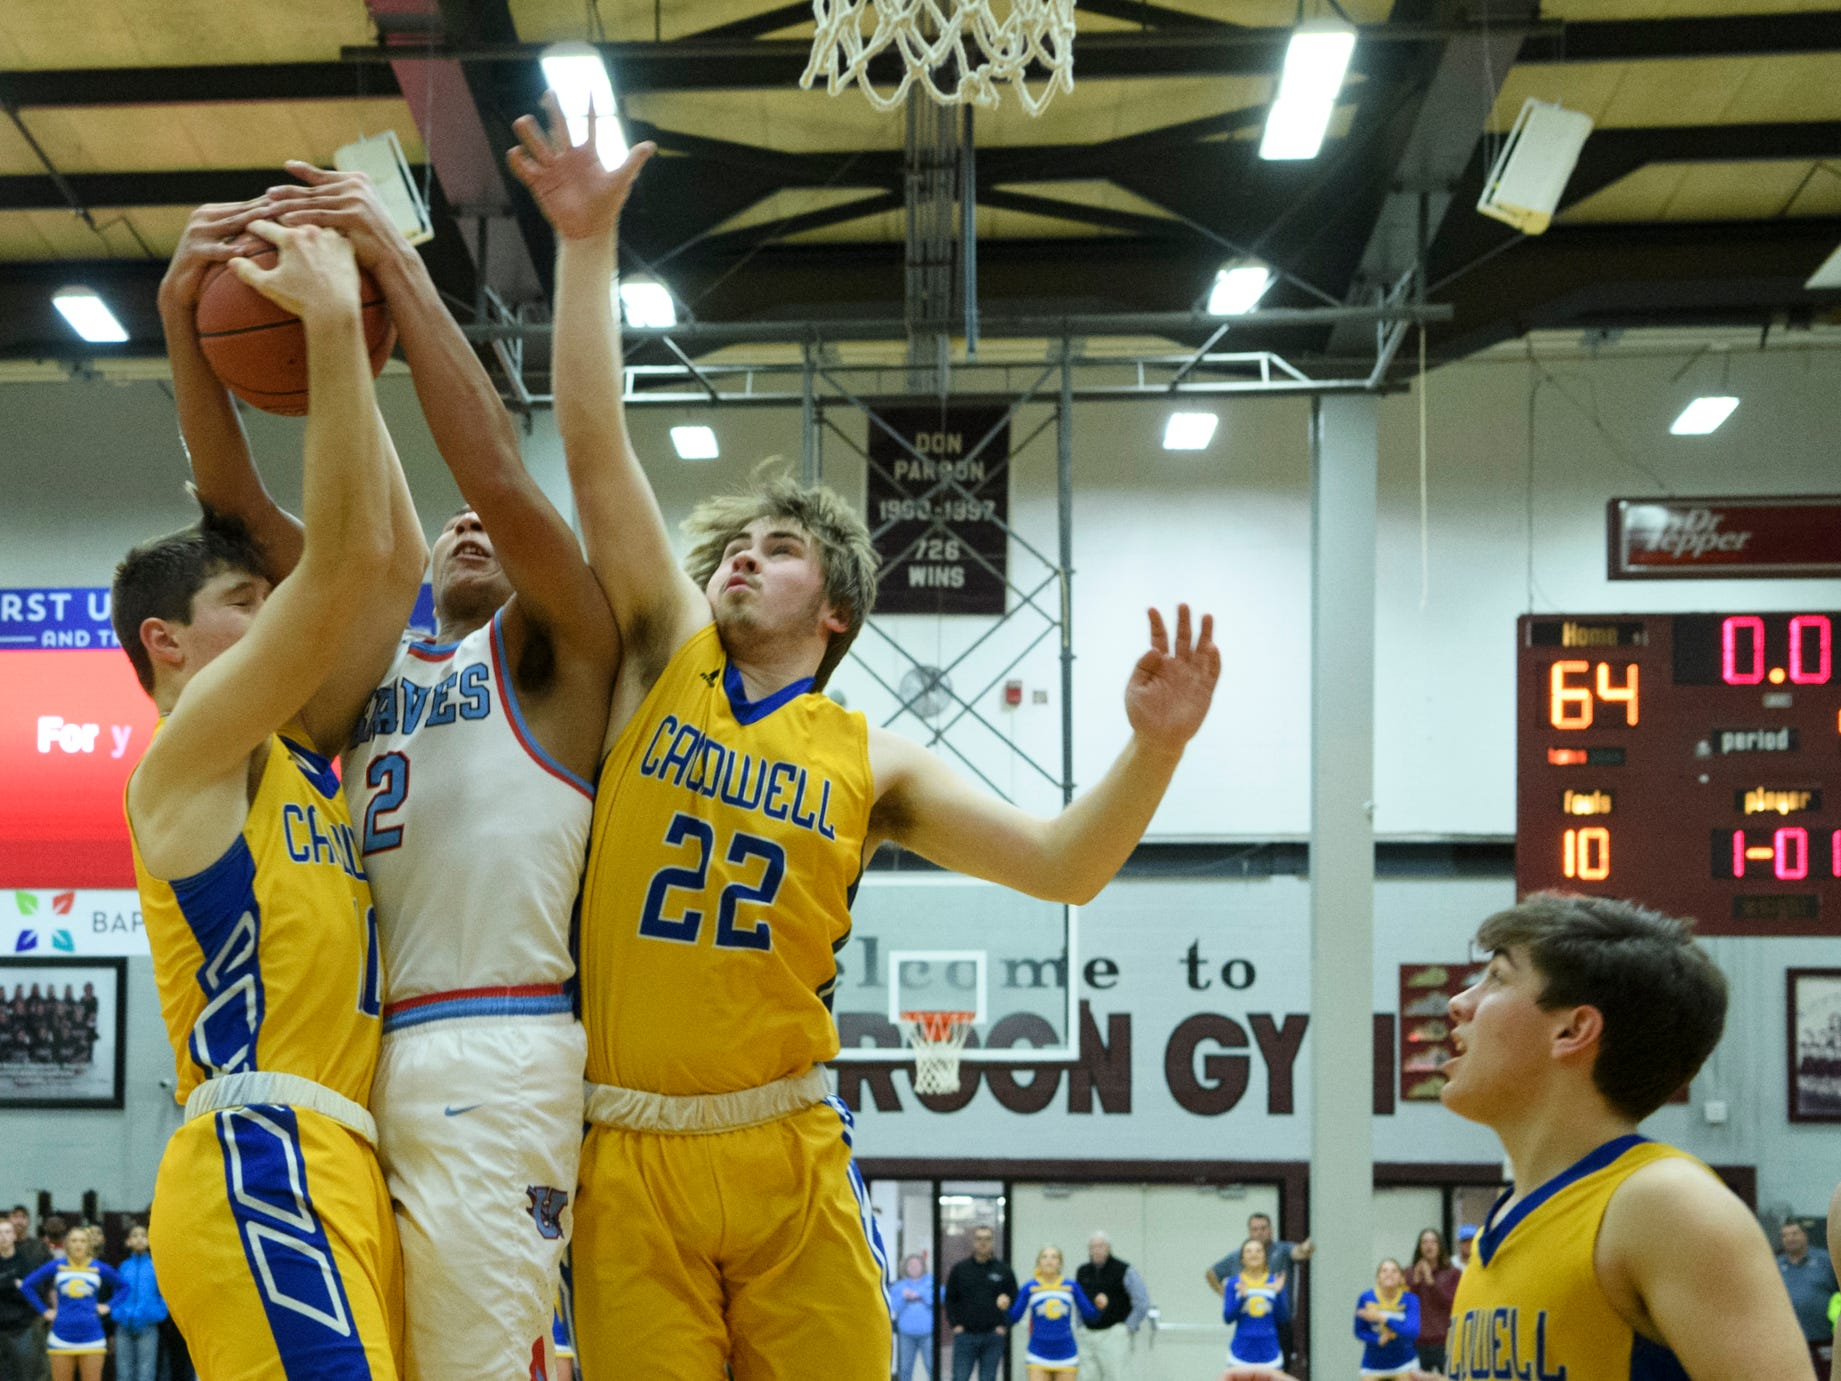 Caldwell County's Tripp Branch (10), Union County's Kaleb Kanipe (2) and Caldwell County's Cayden Fraliex (22) fight for a rebound during the Boys Second Region tournament at Madisonville-North Hopkins High School in Madisonville, Ky., Monday, Feb. 25, 2019. The Tigers defeated the Braves 67-64 to advance to Friday's second region semifinal against University Heights Academy.